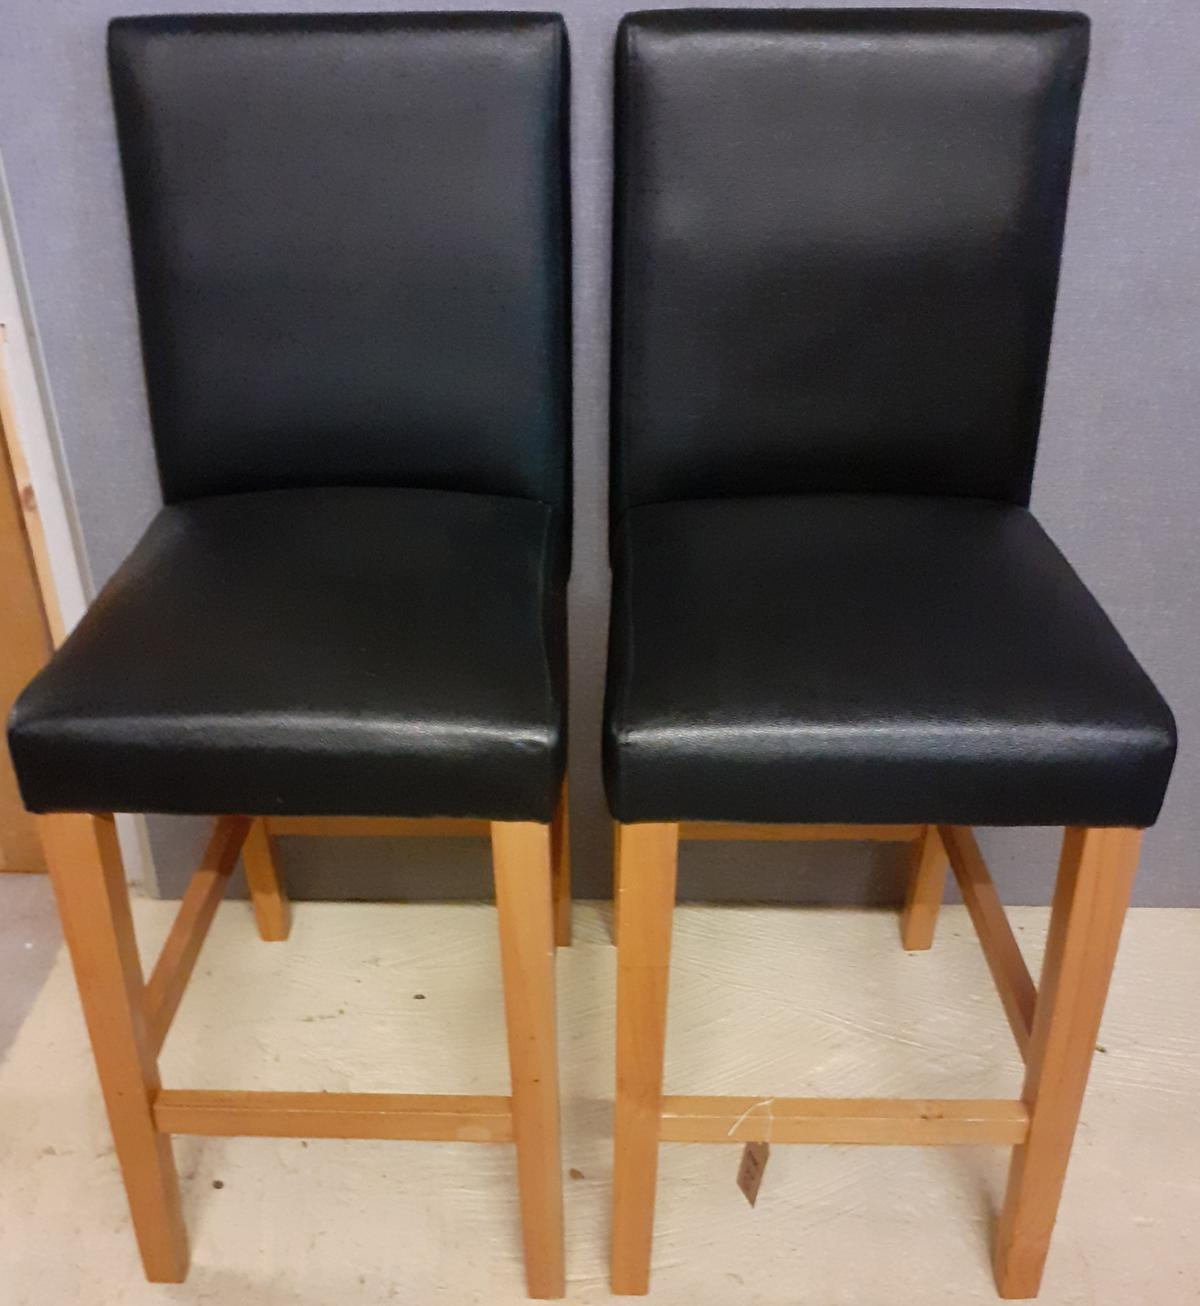 Astonishing Two Black Faux Leather Low Bar Stools Machost Co Dining Chair Design Ideas Machostcouk